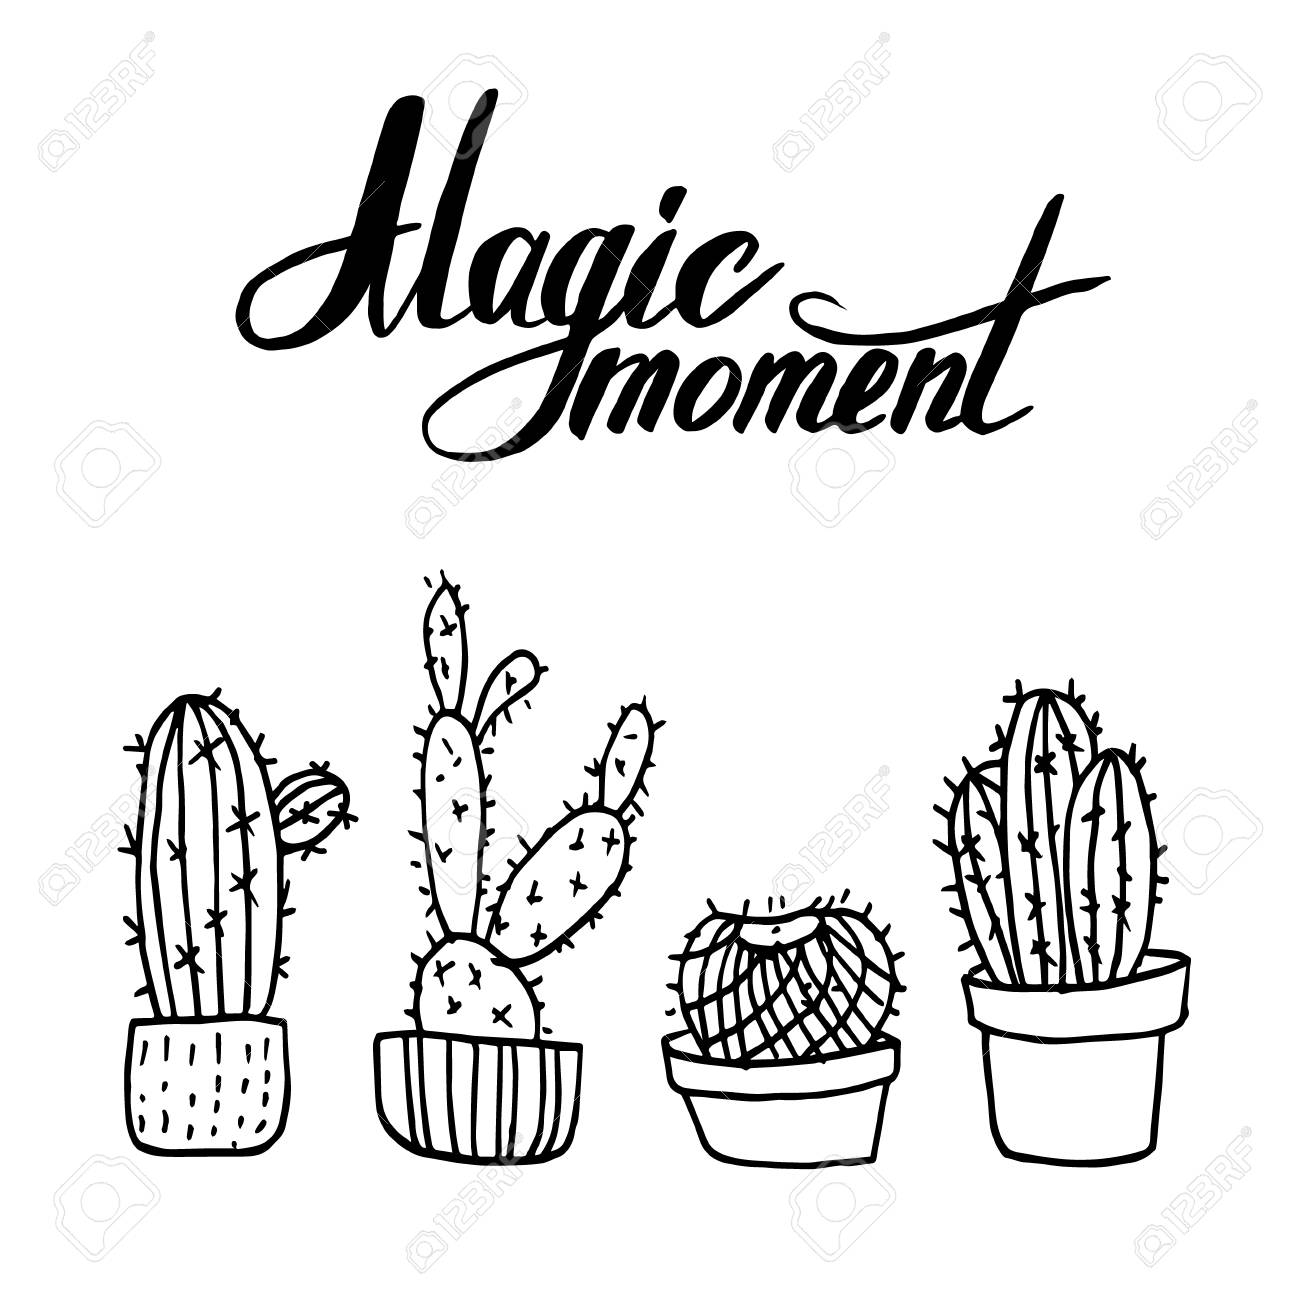 vector hand drawn illustration artwork with cactus and magic